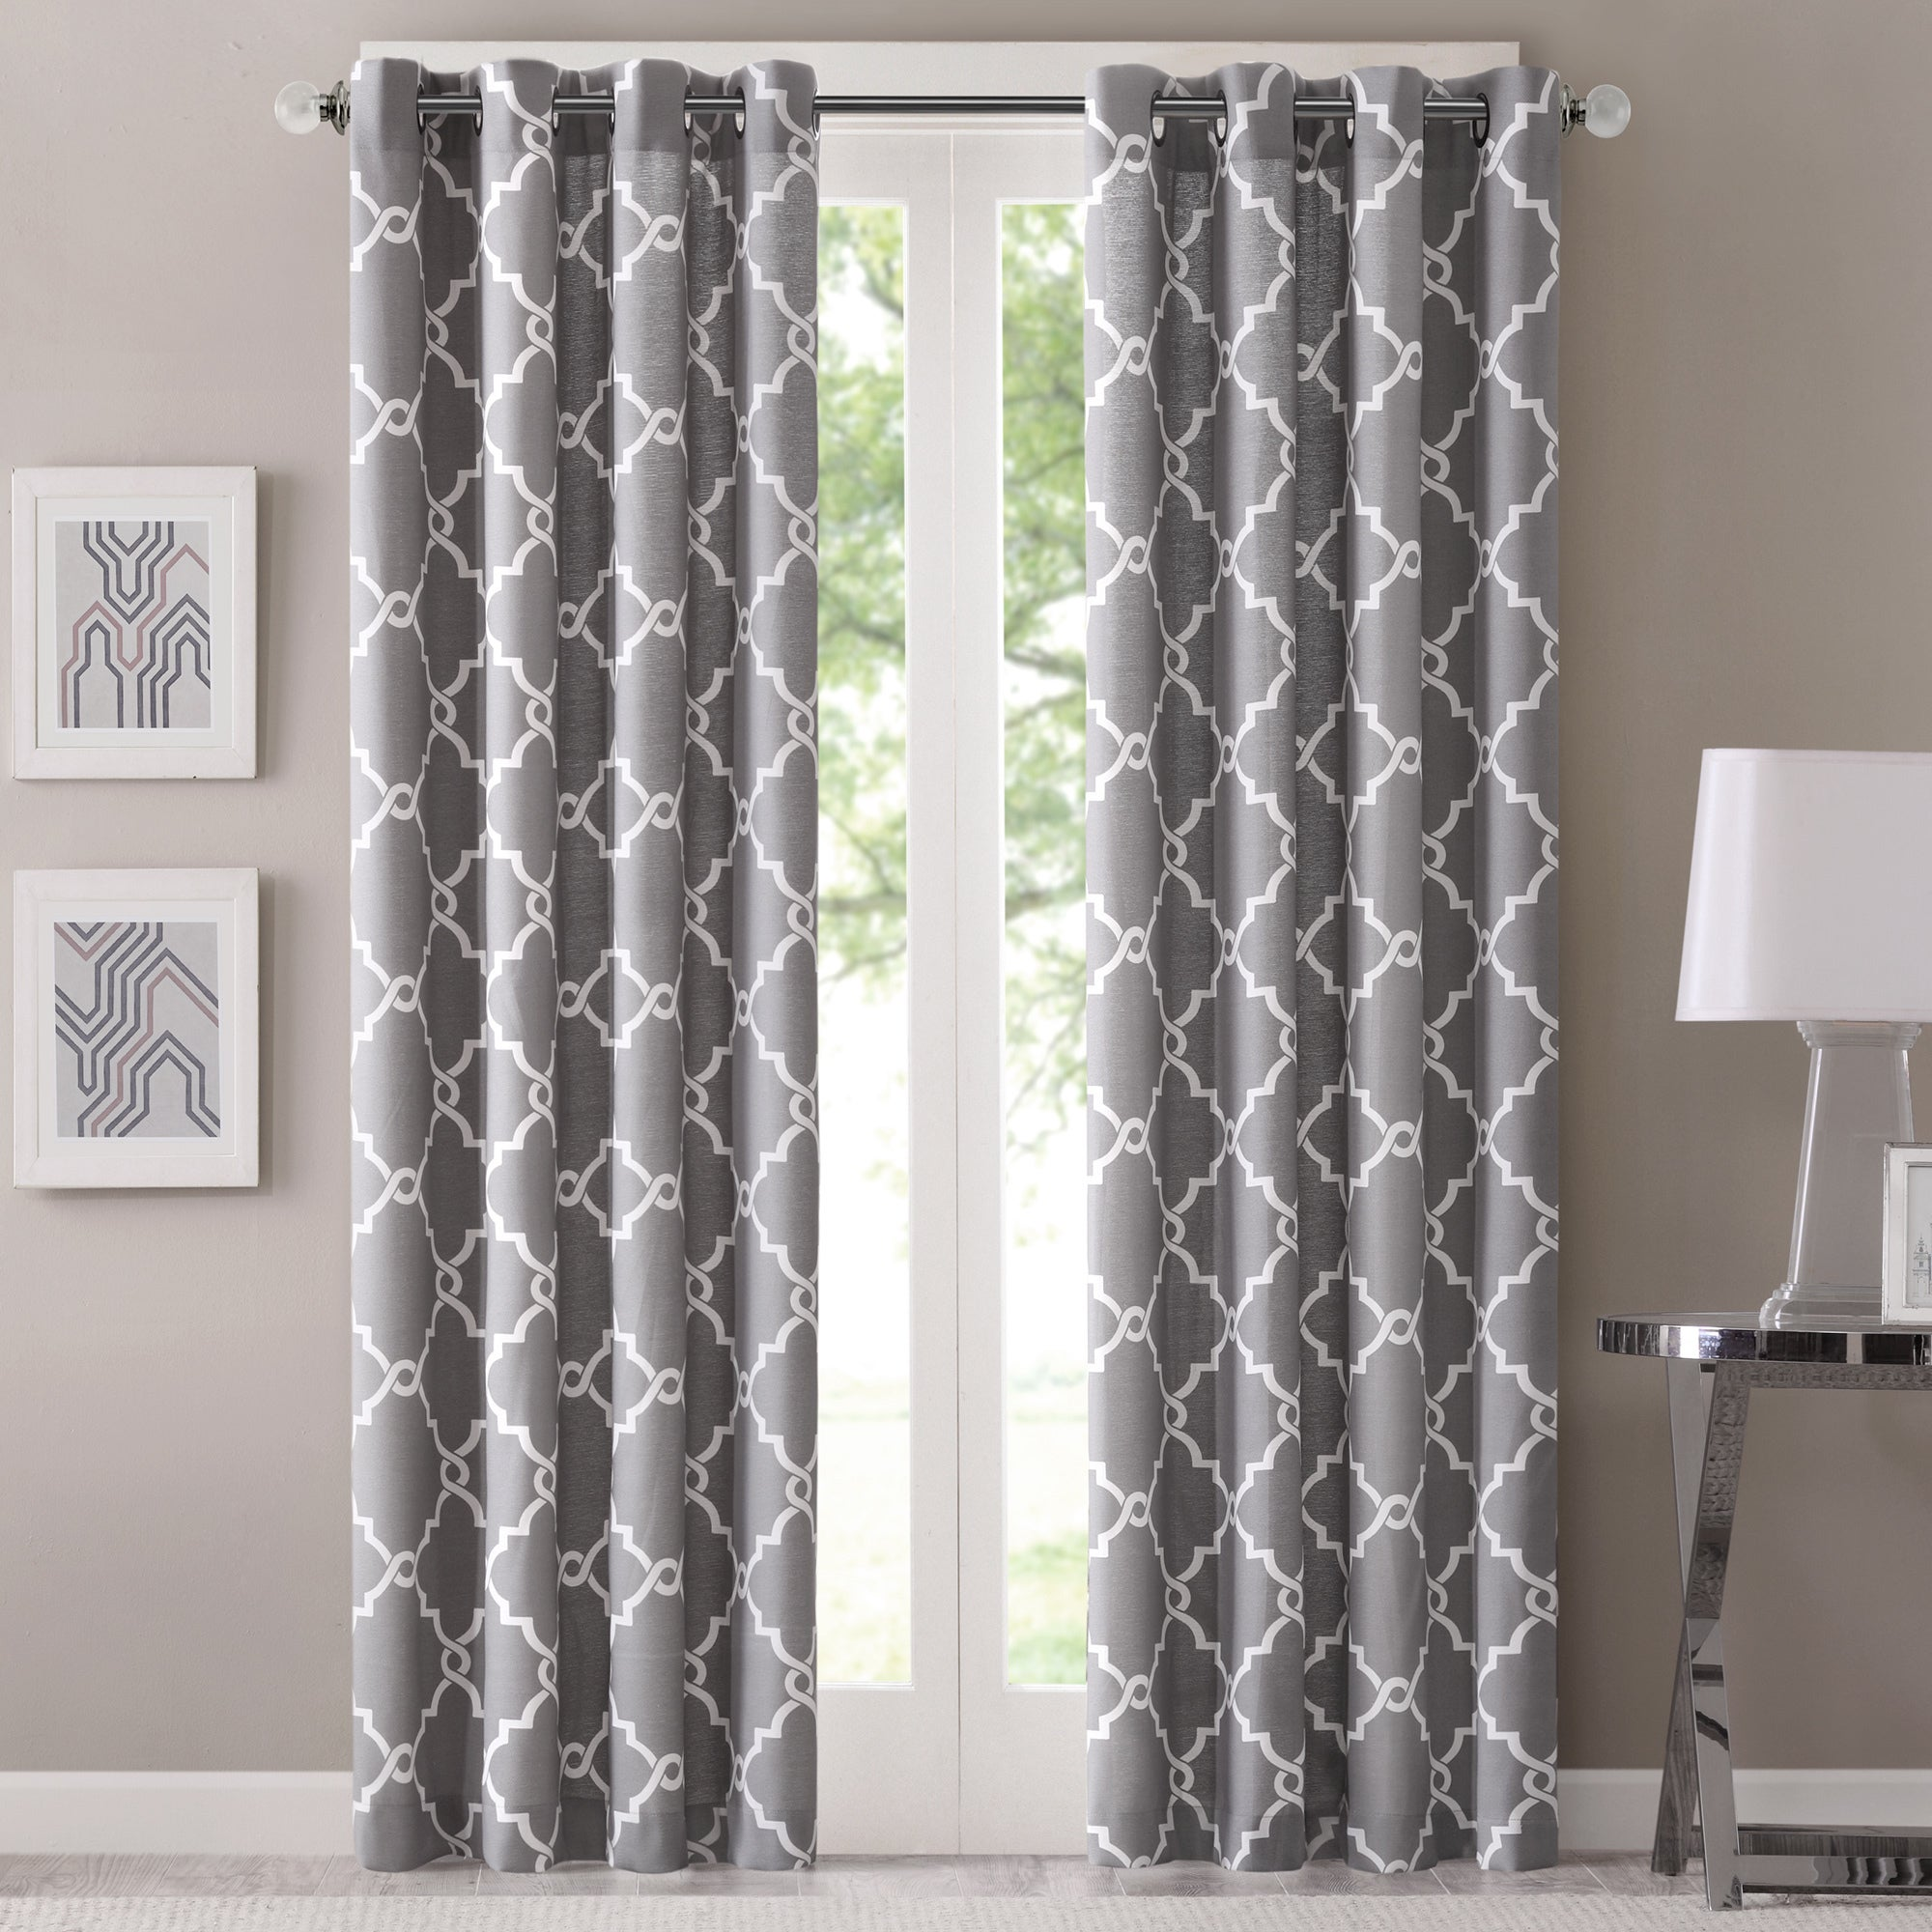 garden silk drapes free madison embroidered faux eliza product curtain home panel overstock park